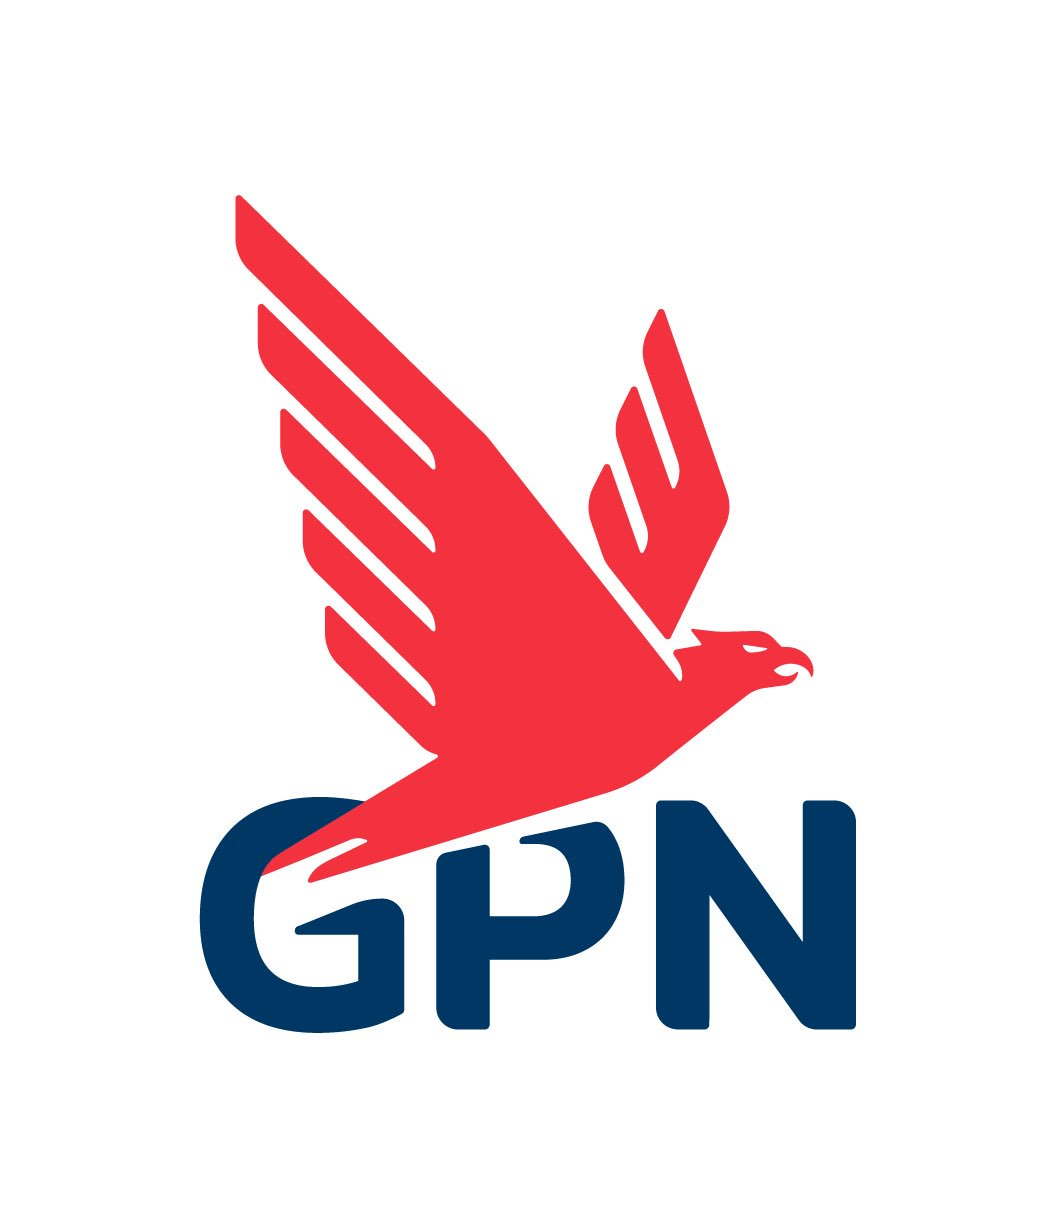 """Go Pay Indonesia: Bank Indonesia On Twitter: """"Logo Nasional Gerbang"""